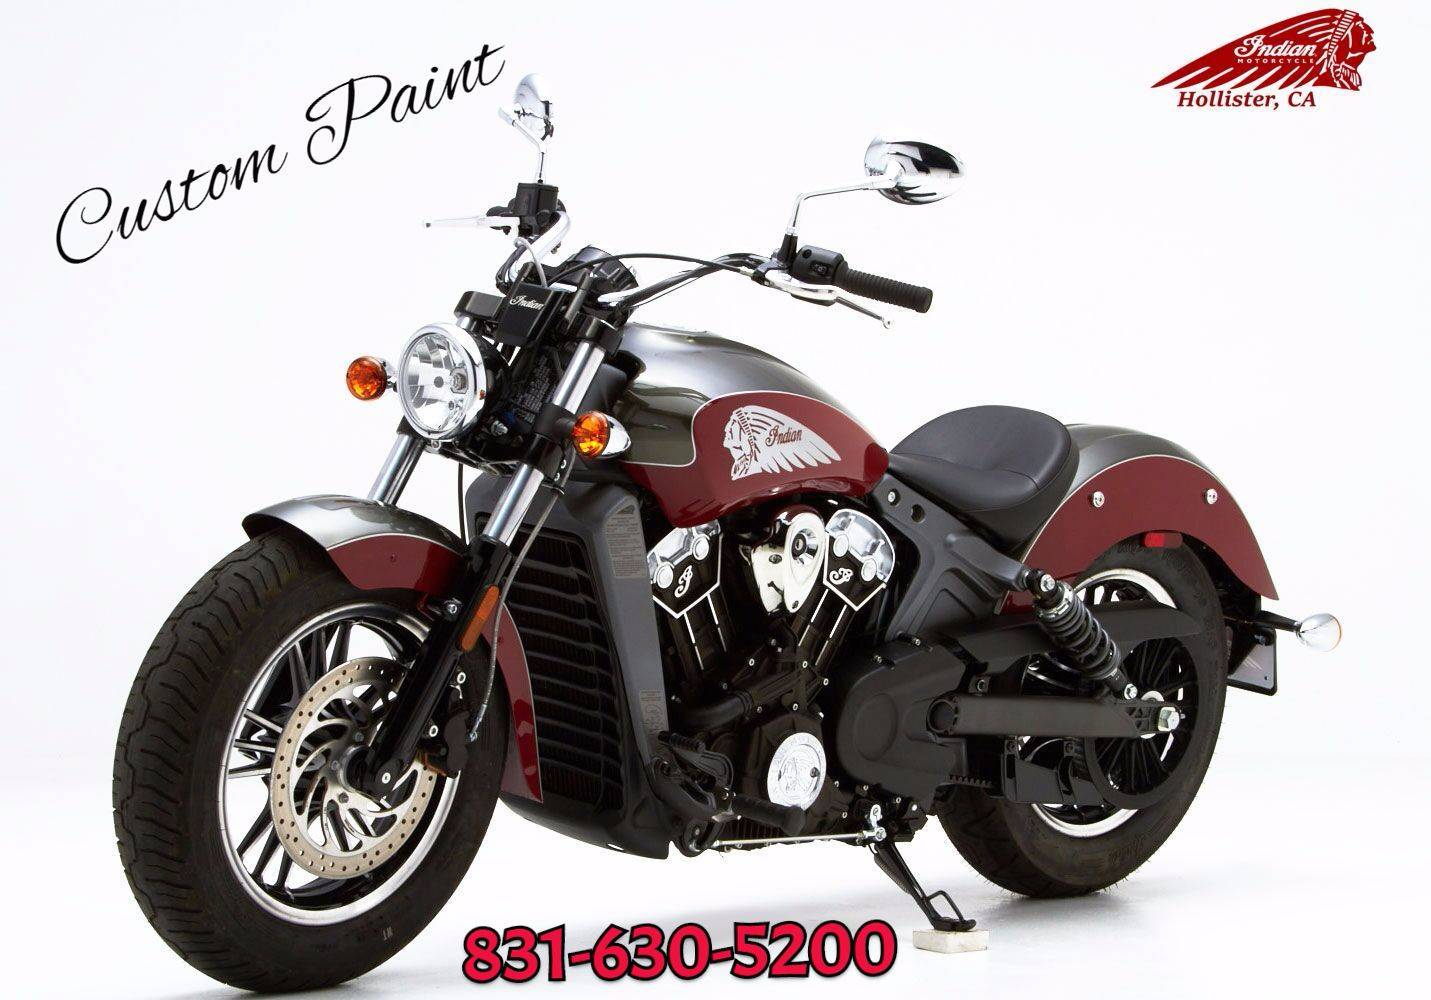 2017 Indian Scout for sale 475